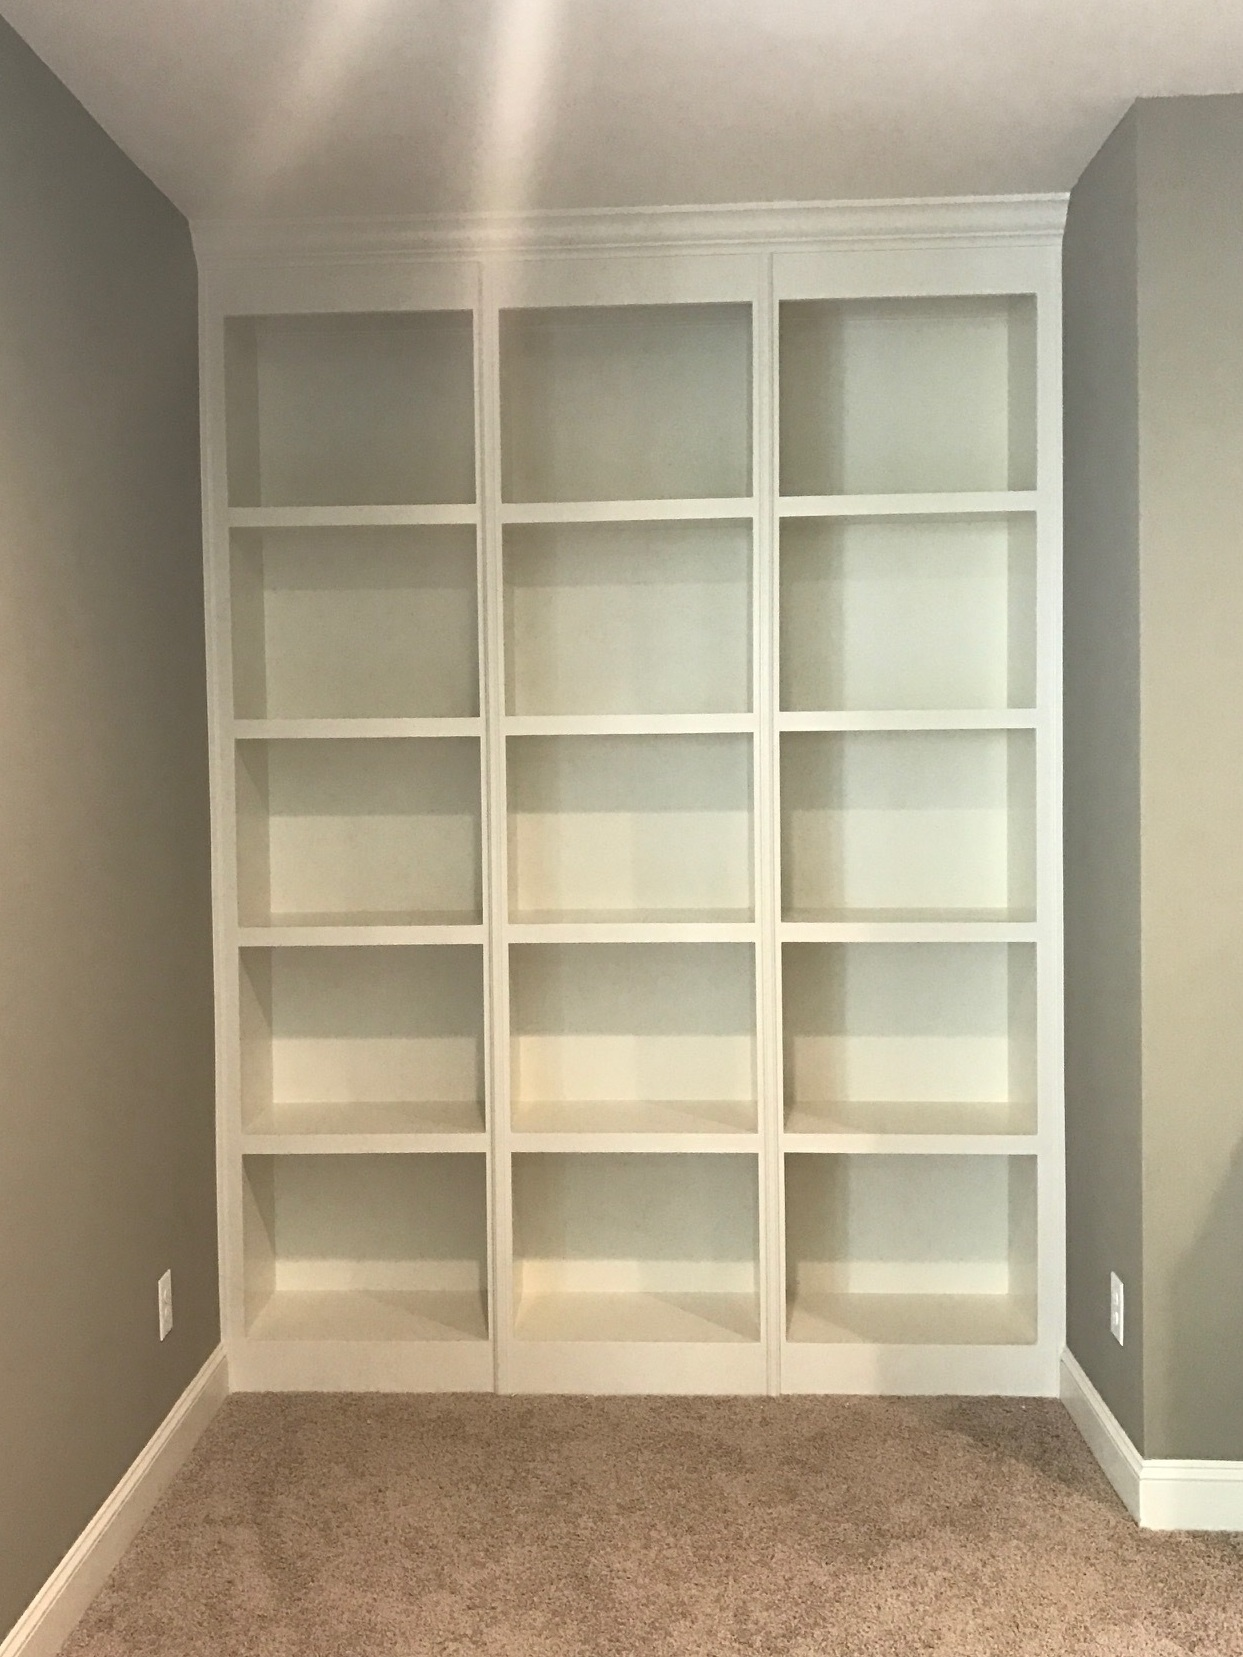 Record Holder Built-In with Fixed Shelves